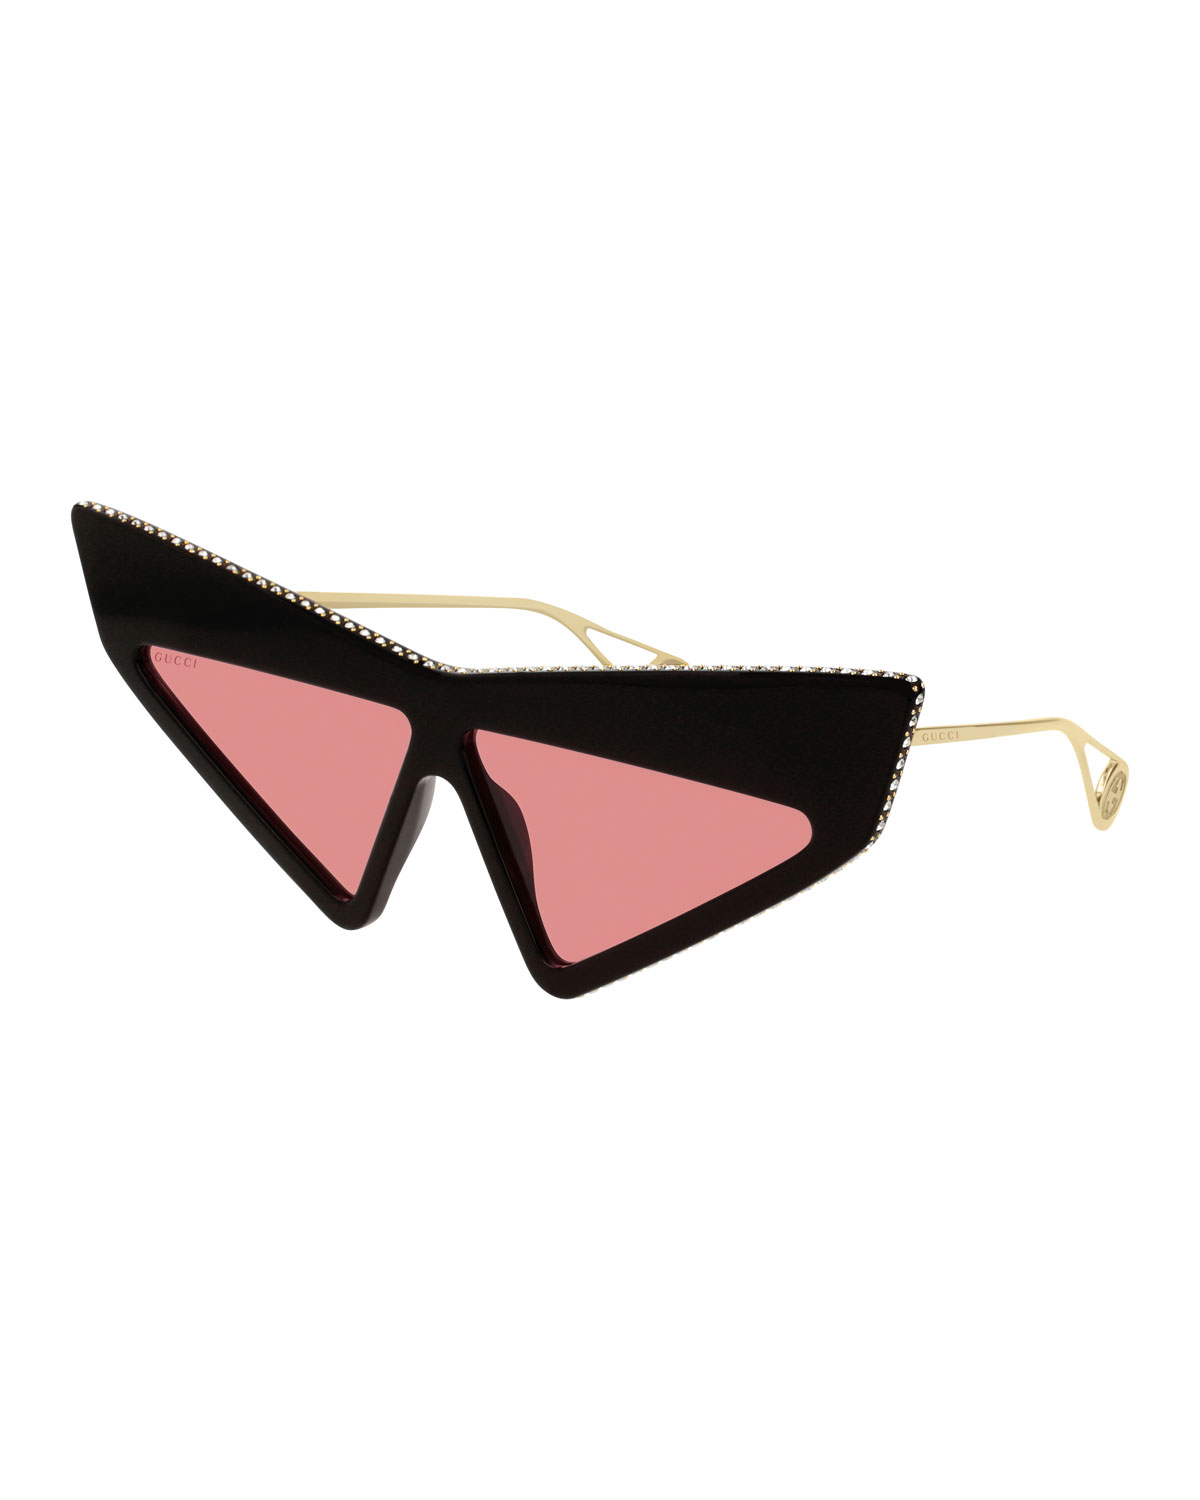 Crystal Studded Acetate Mask Cat-Eye Sunglasses in Black/Gold/Red